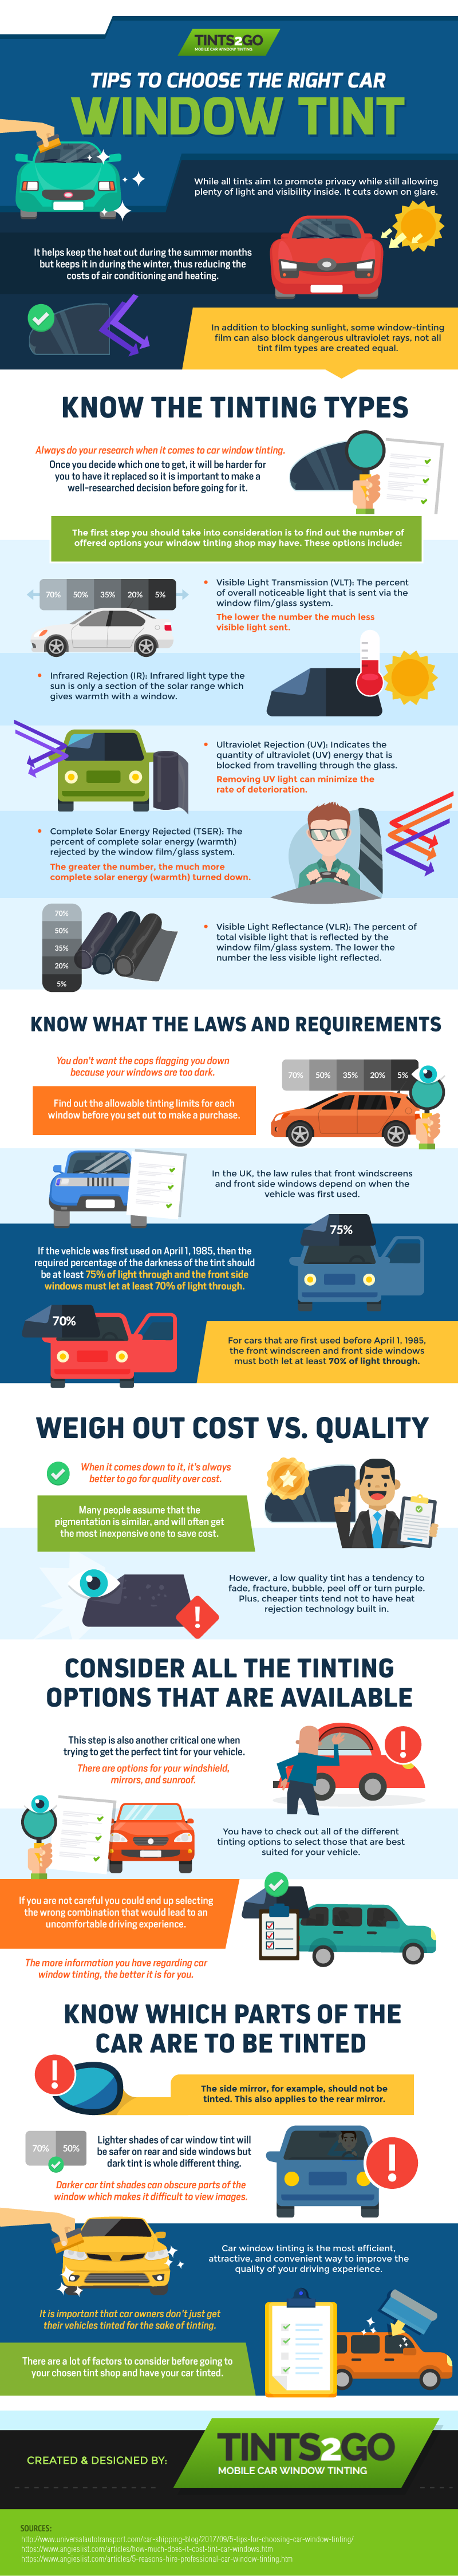 Tips to choose the right car window tint